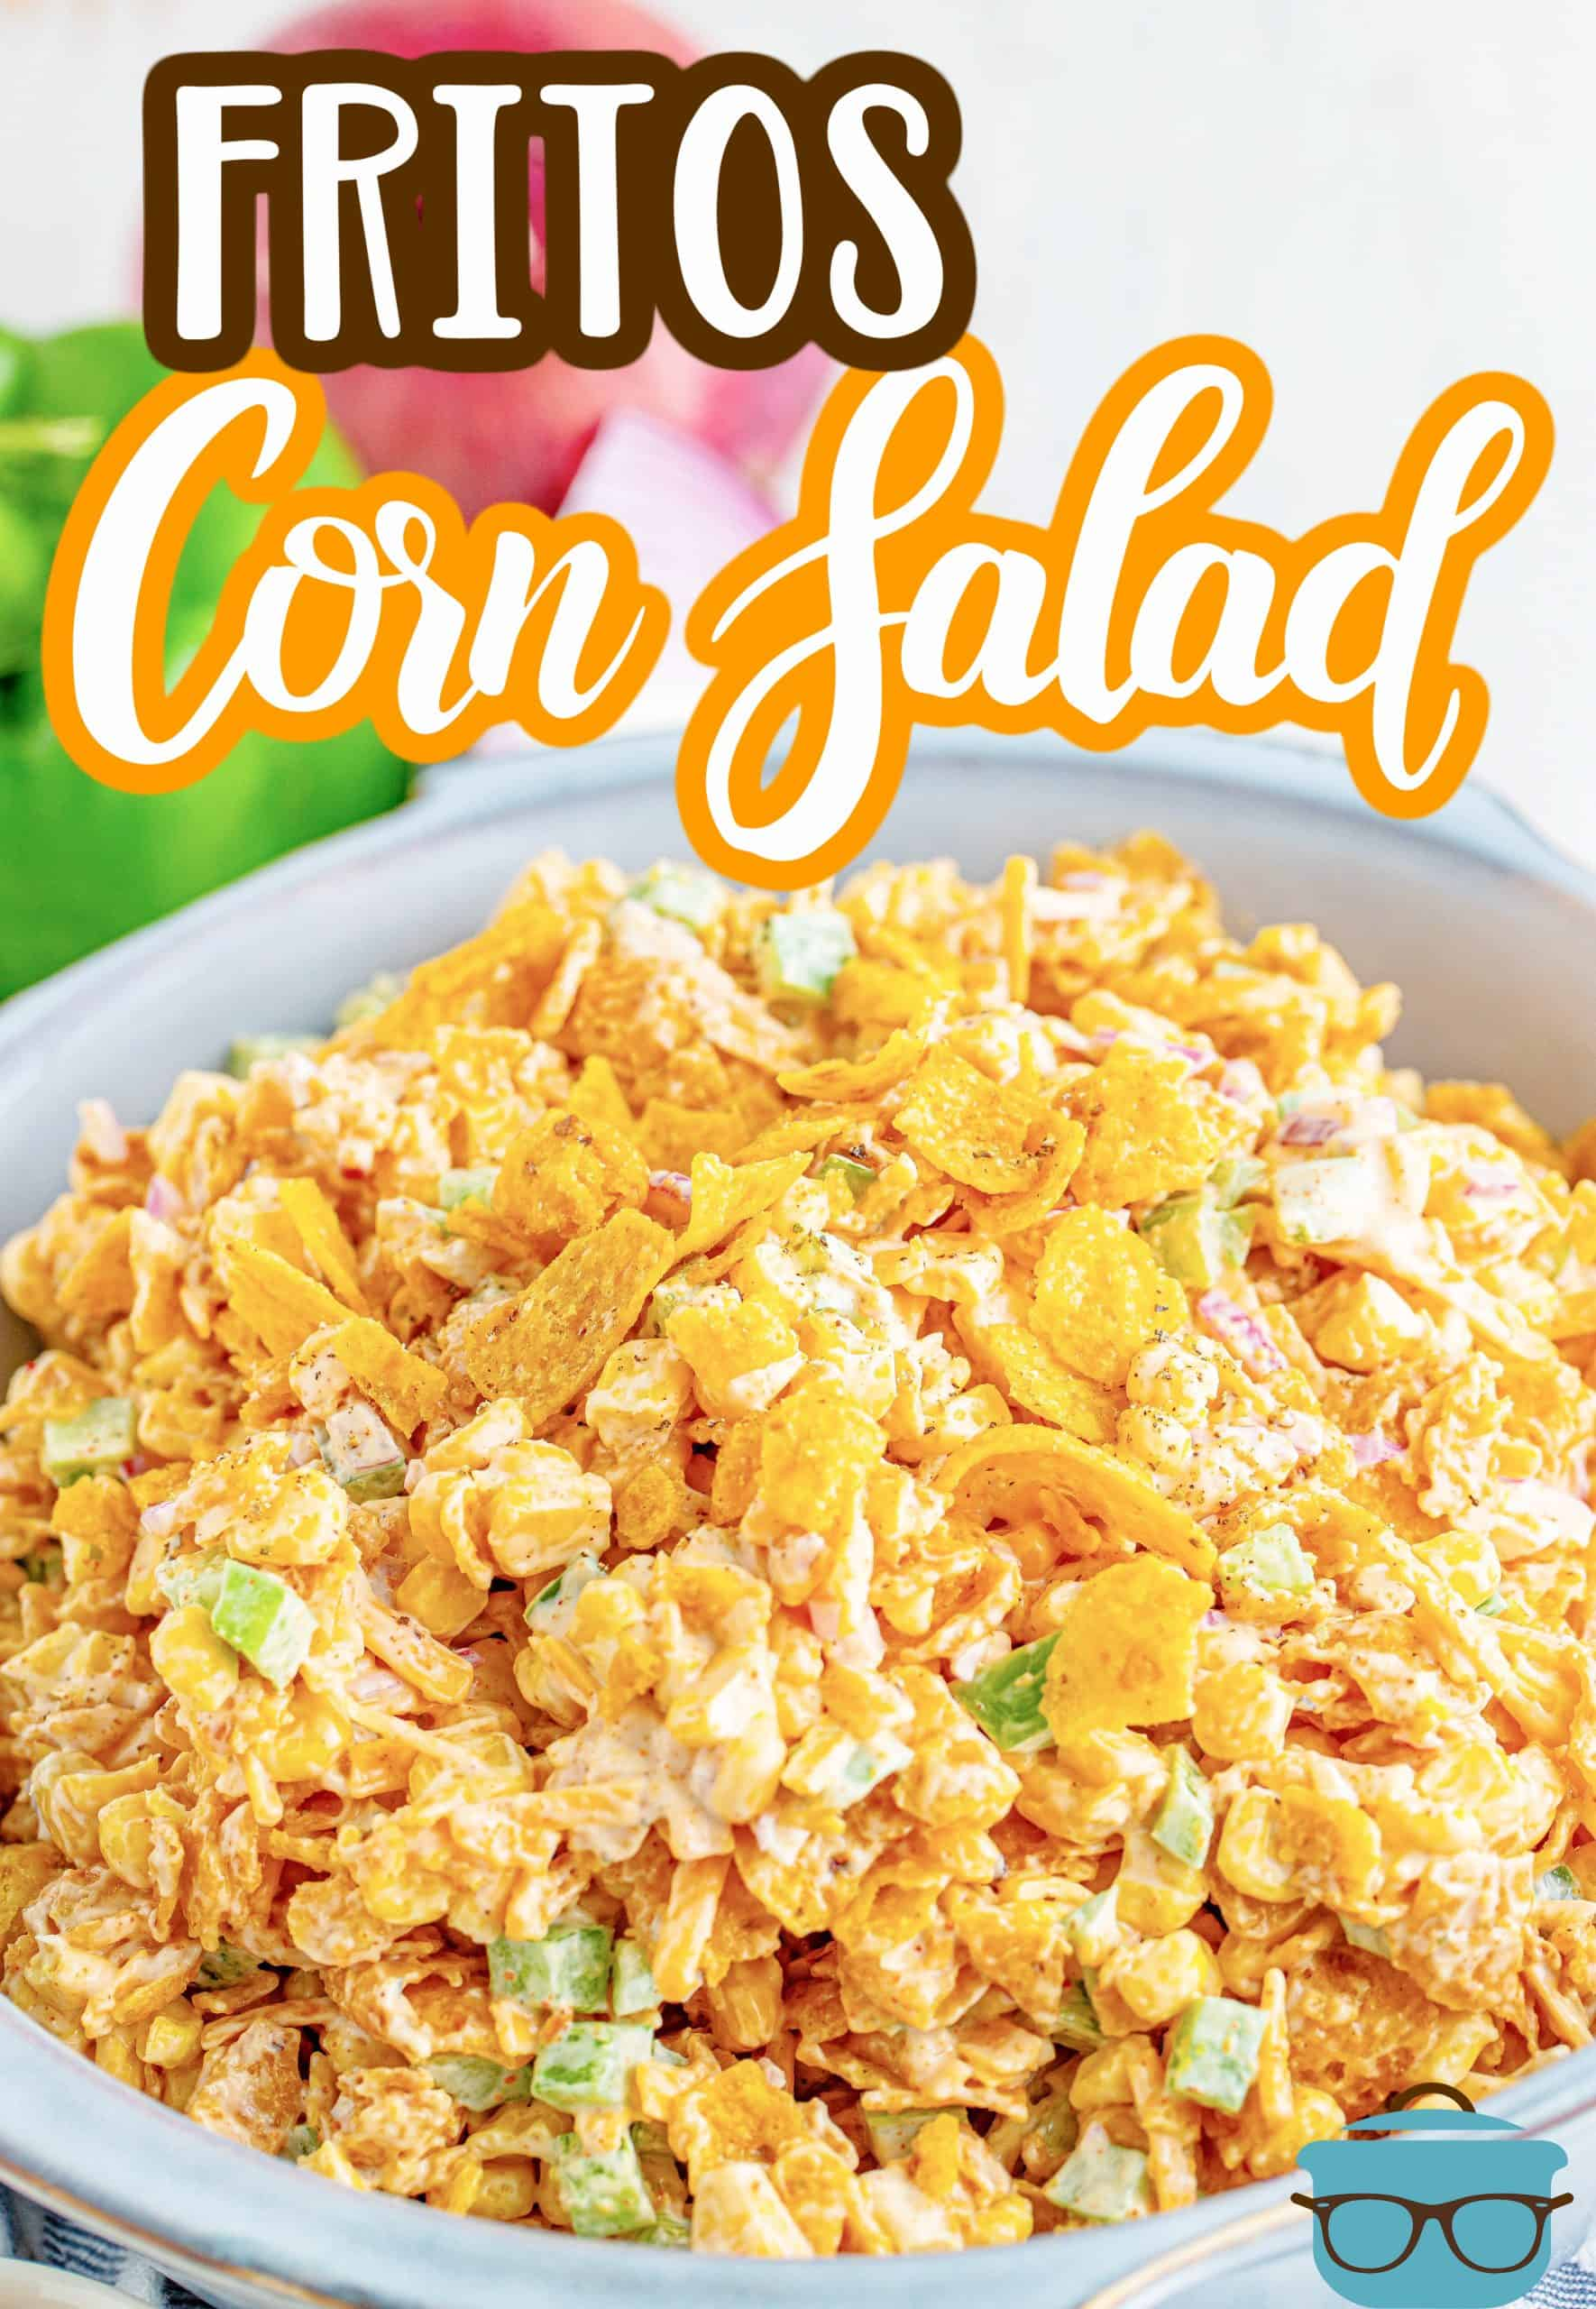 This Frito Corn Salad is a super fun appetizer that combines corn kernels, cheese, taco seasoning, Fritos, green peppers and red onion. Always a hit!